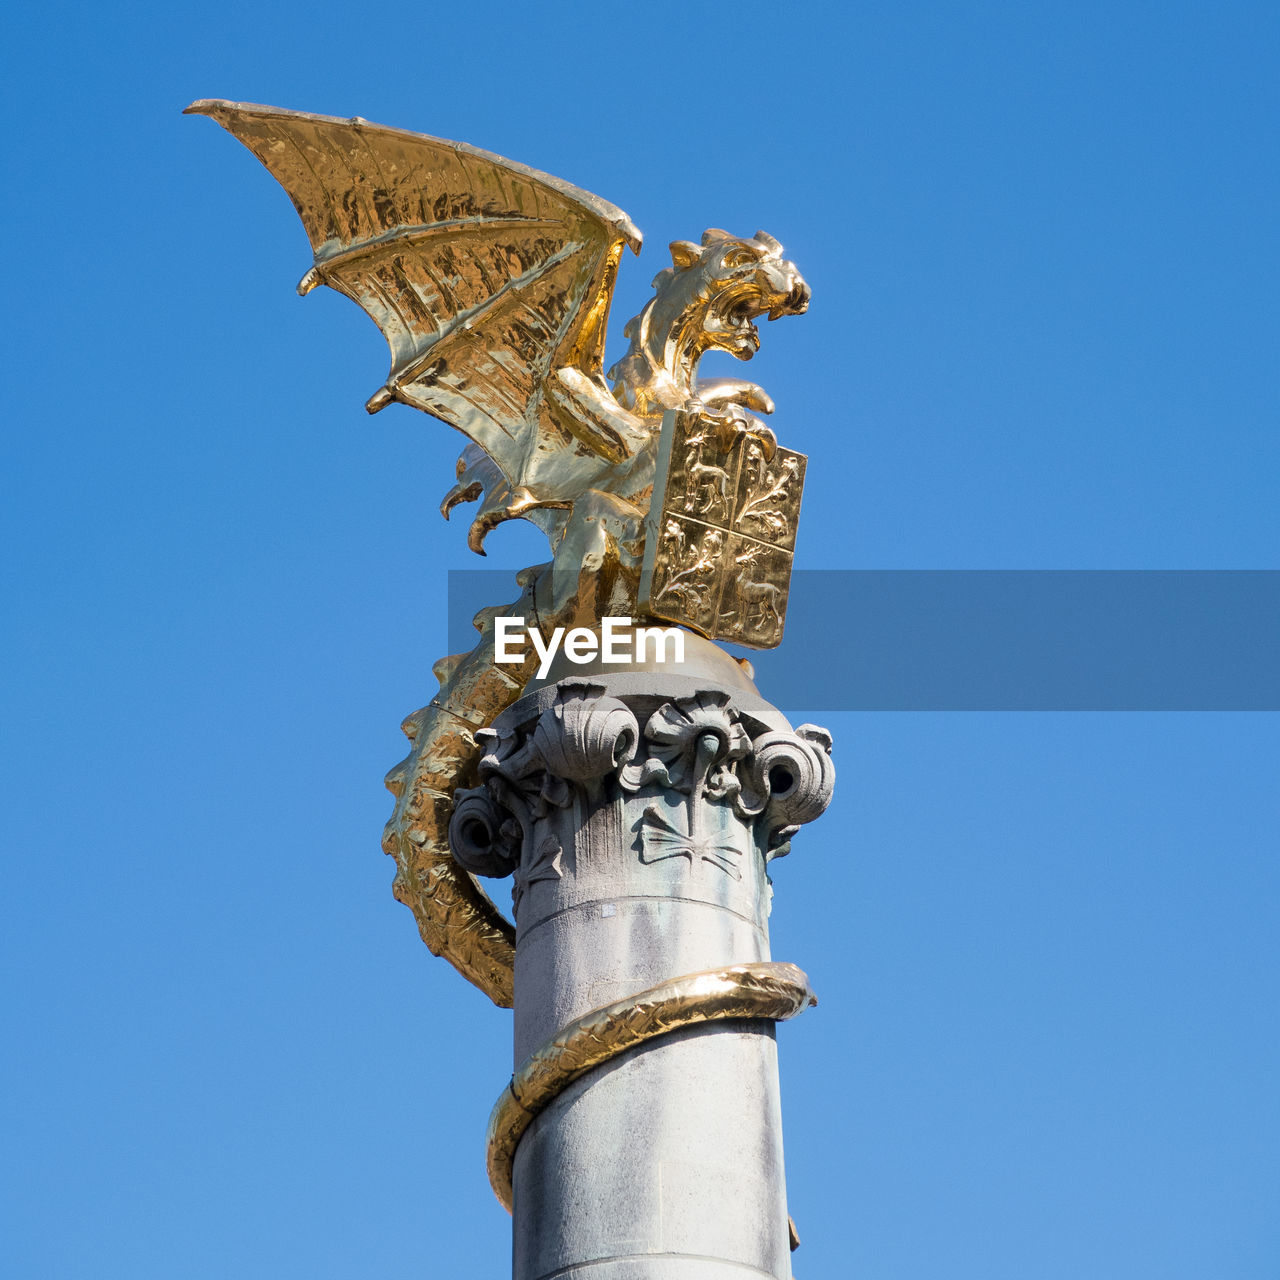 sky, sculpture, low angle view, clear sky, art and craft, architecture, blue, no people, statue, creativity, human representation, representation, day, gold colored, built structure, nature, copy space, religion, female likeness, craft, angel, outdoors, architectural column